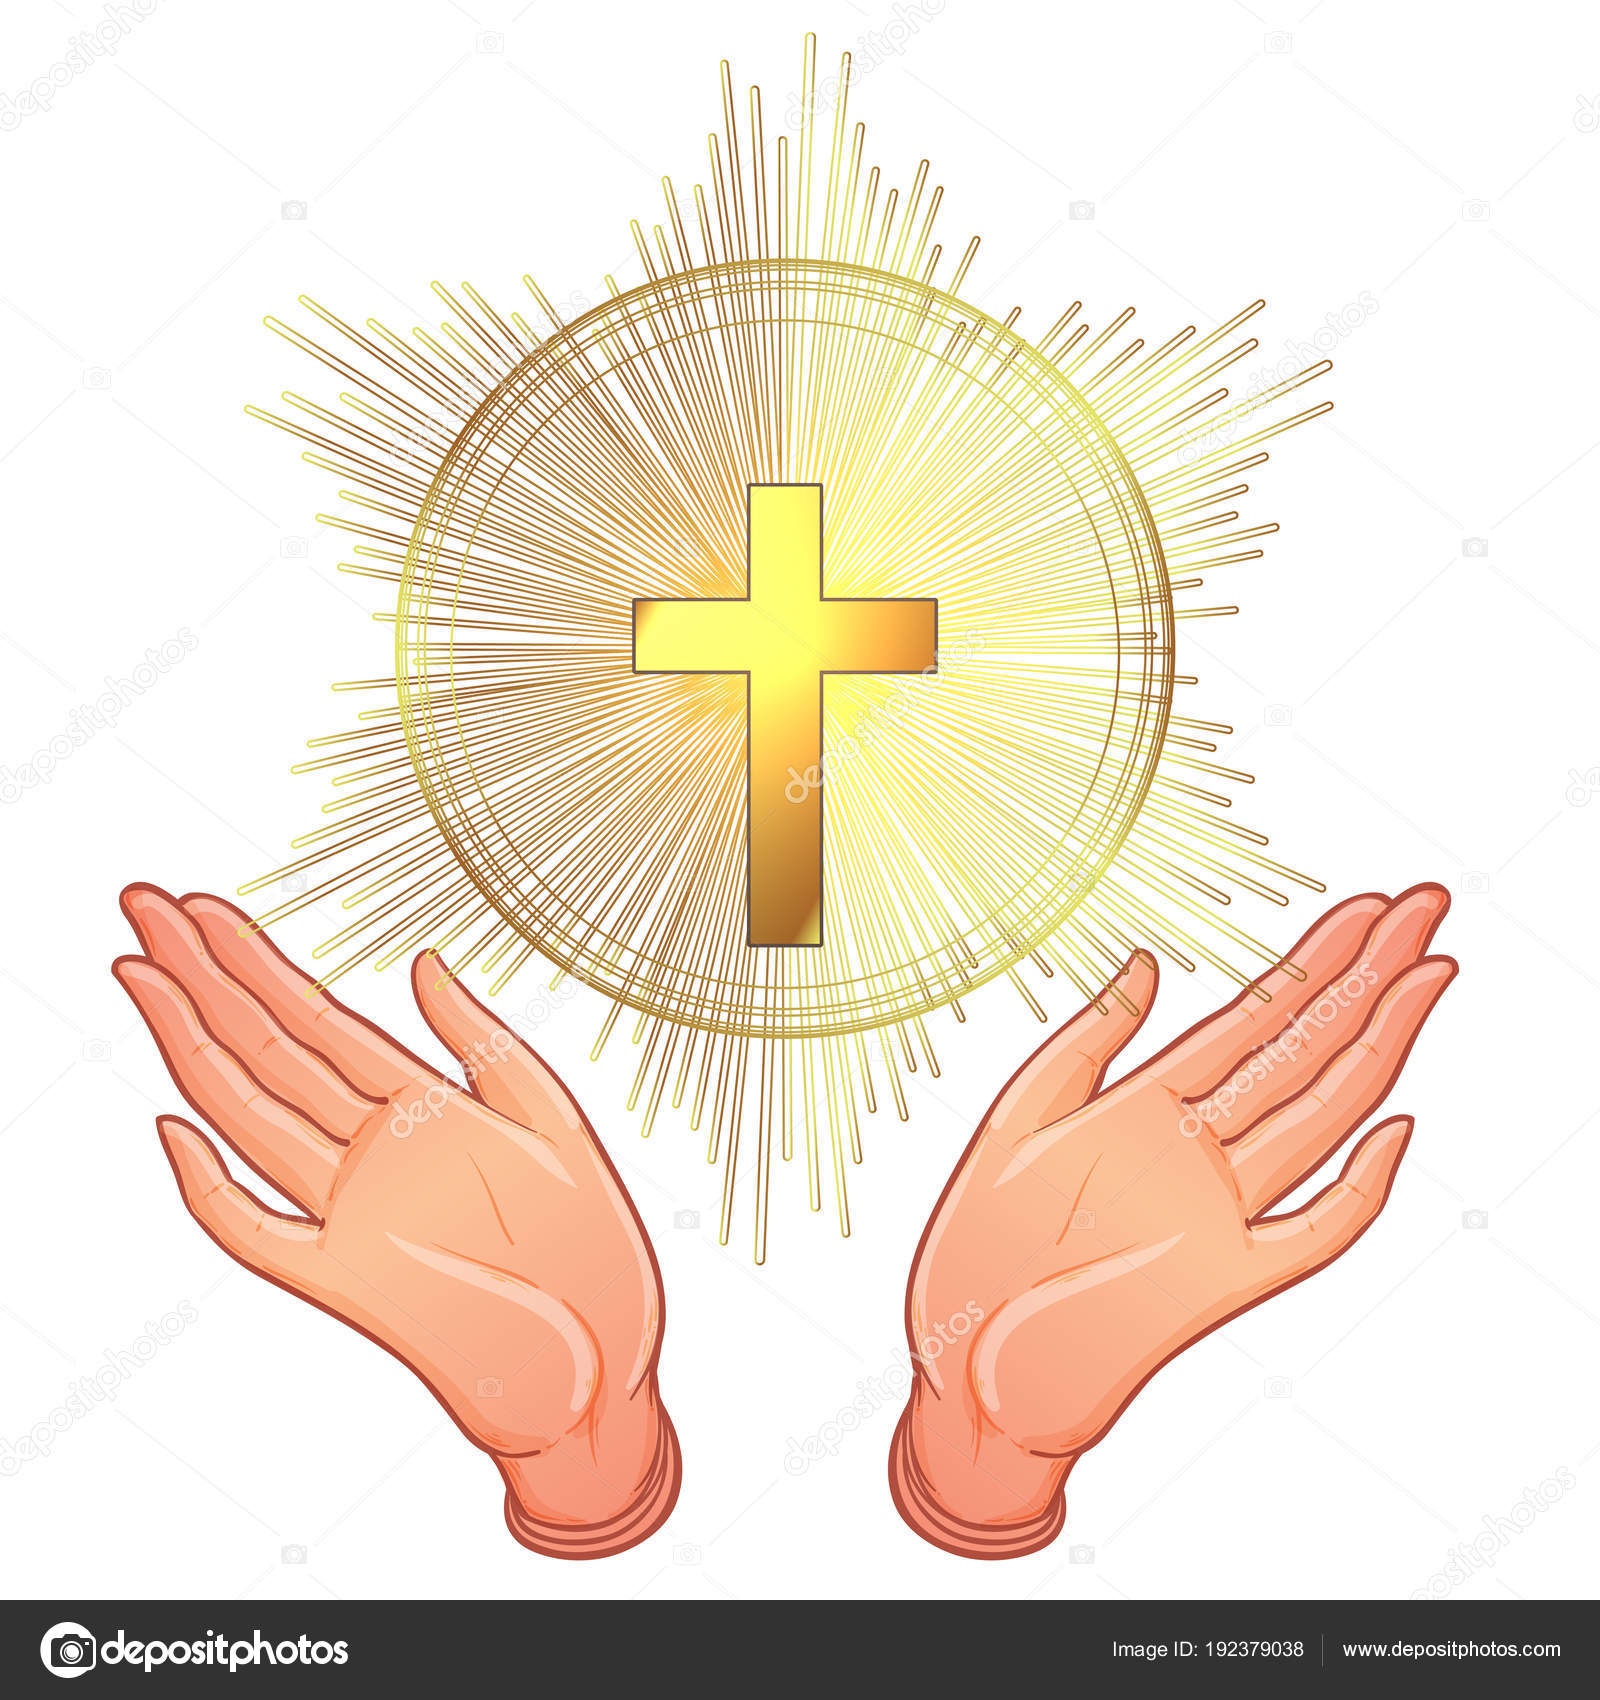 what is the main symbol of christianity